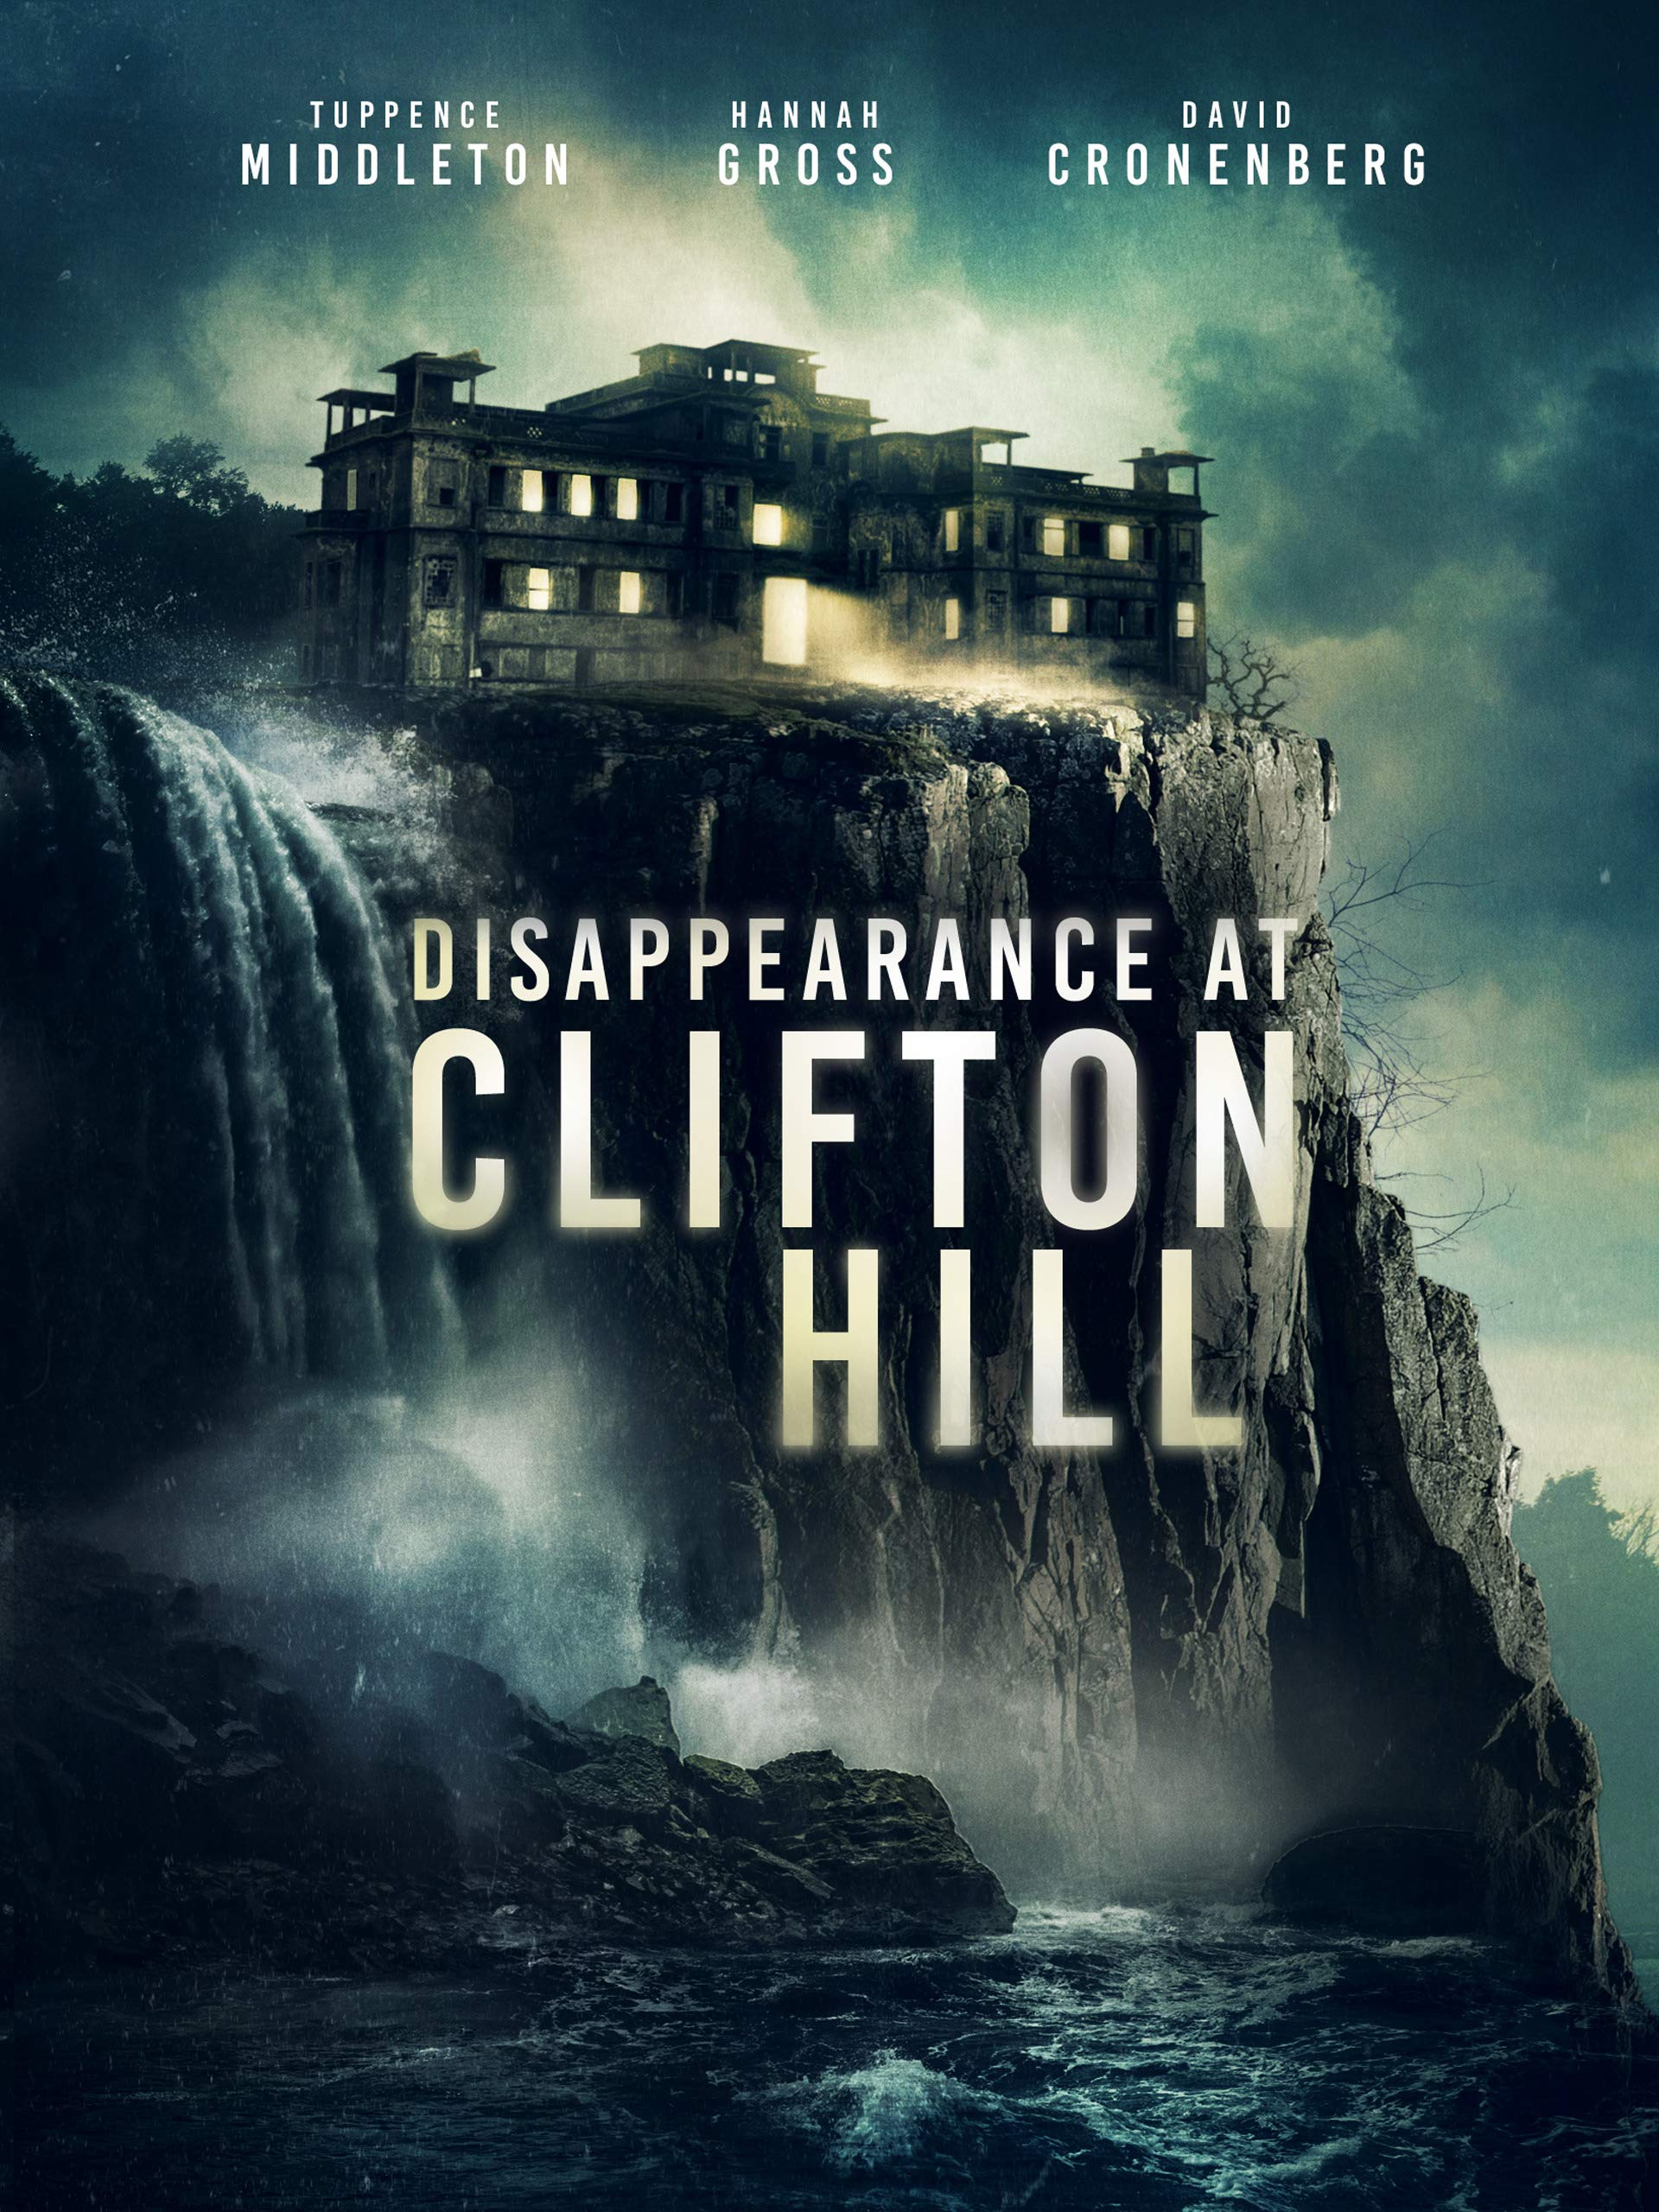 Watch Disappearance At Clifton Hill Prime Video